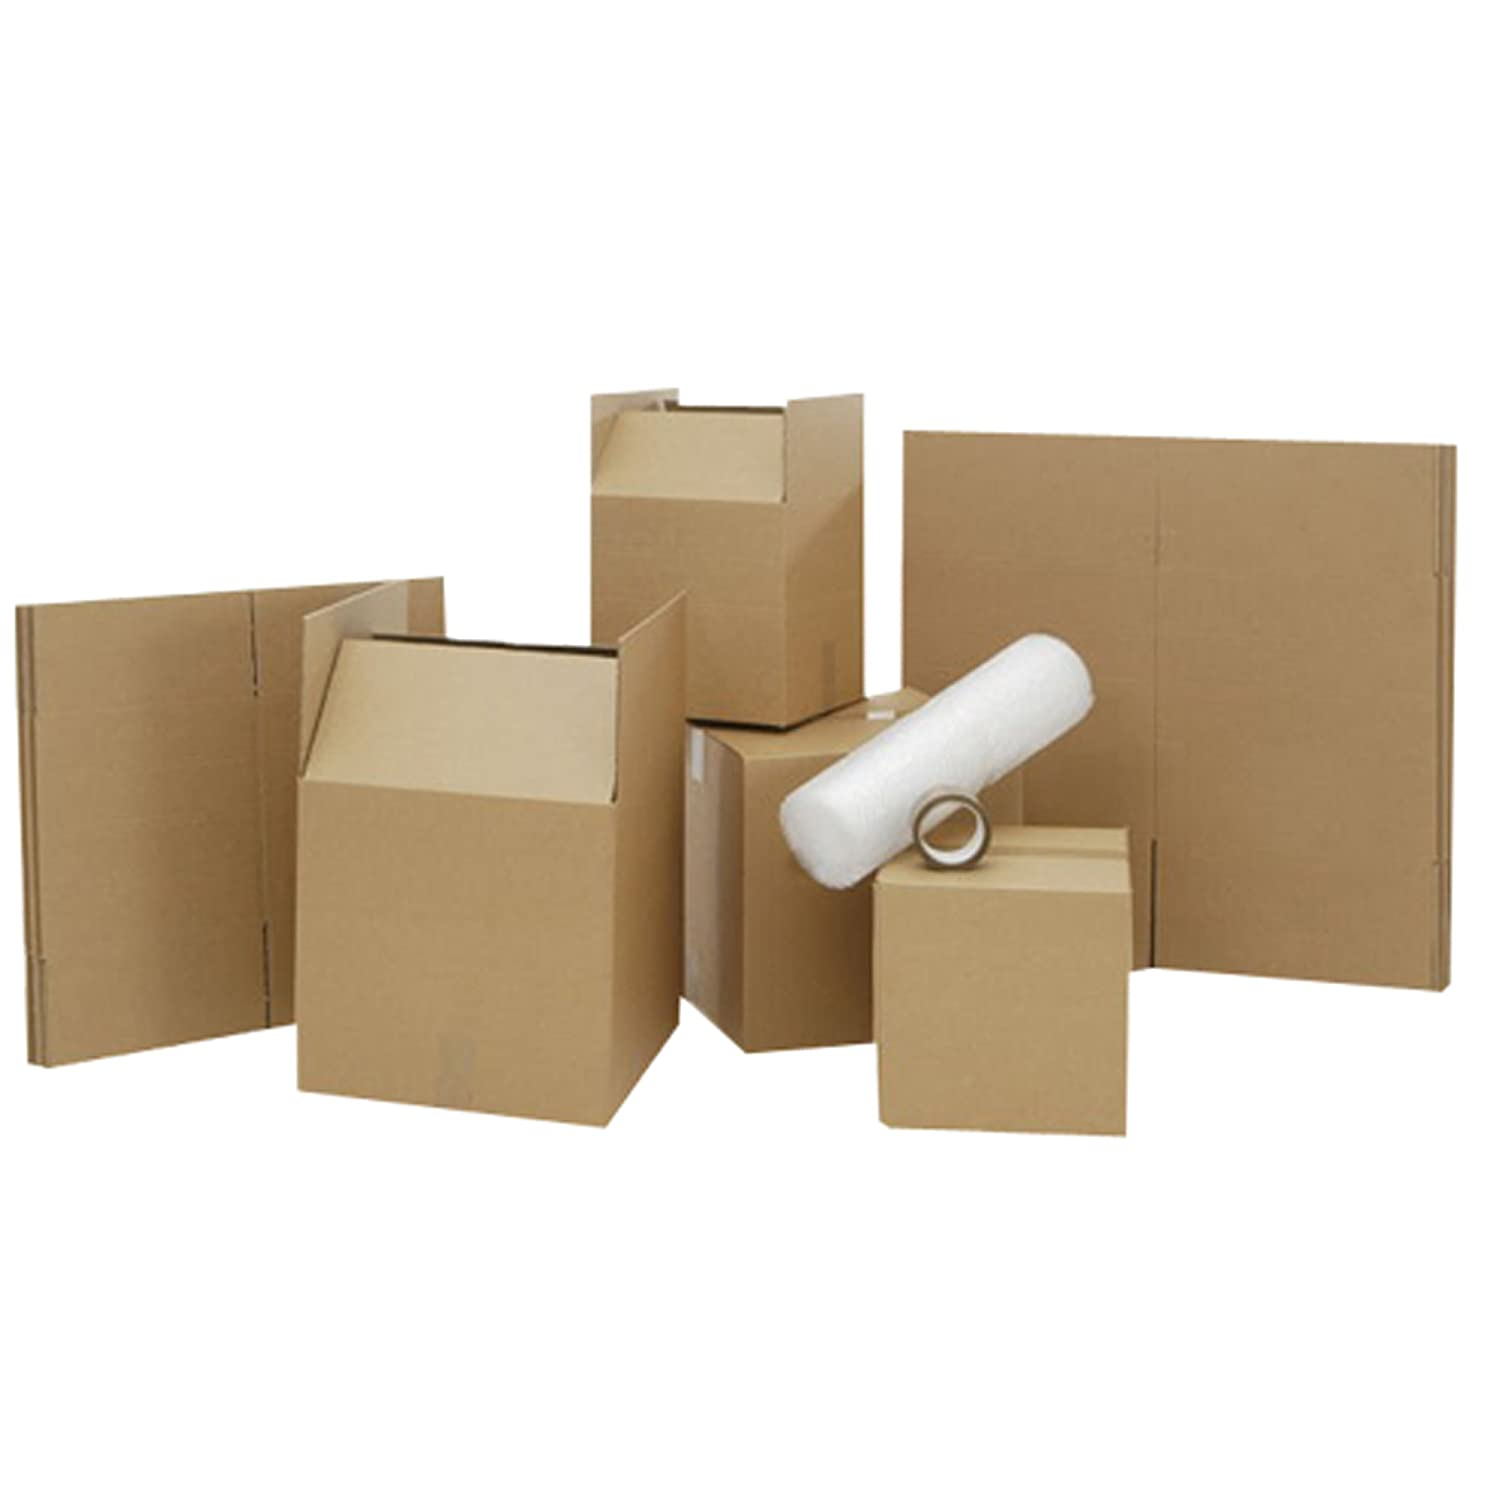 Large Cardboard Box House Moving Removal Packing Kit inc 40 new boxes (Various Sizes) & Extras bubble wrap, refuse sacks, tape, marker pen